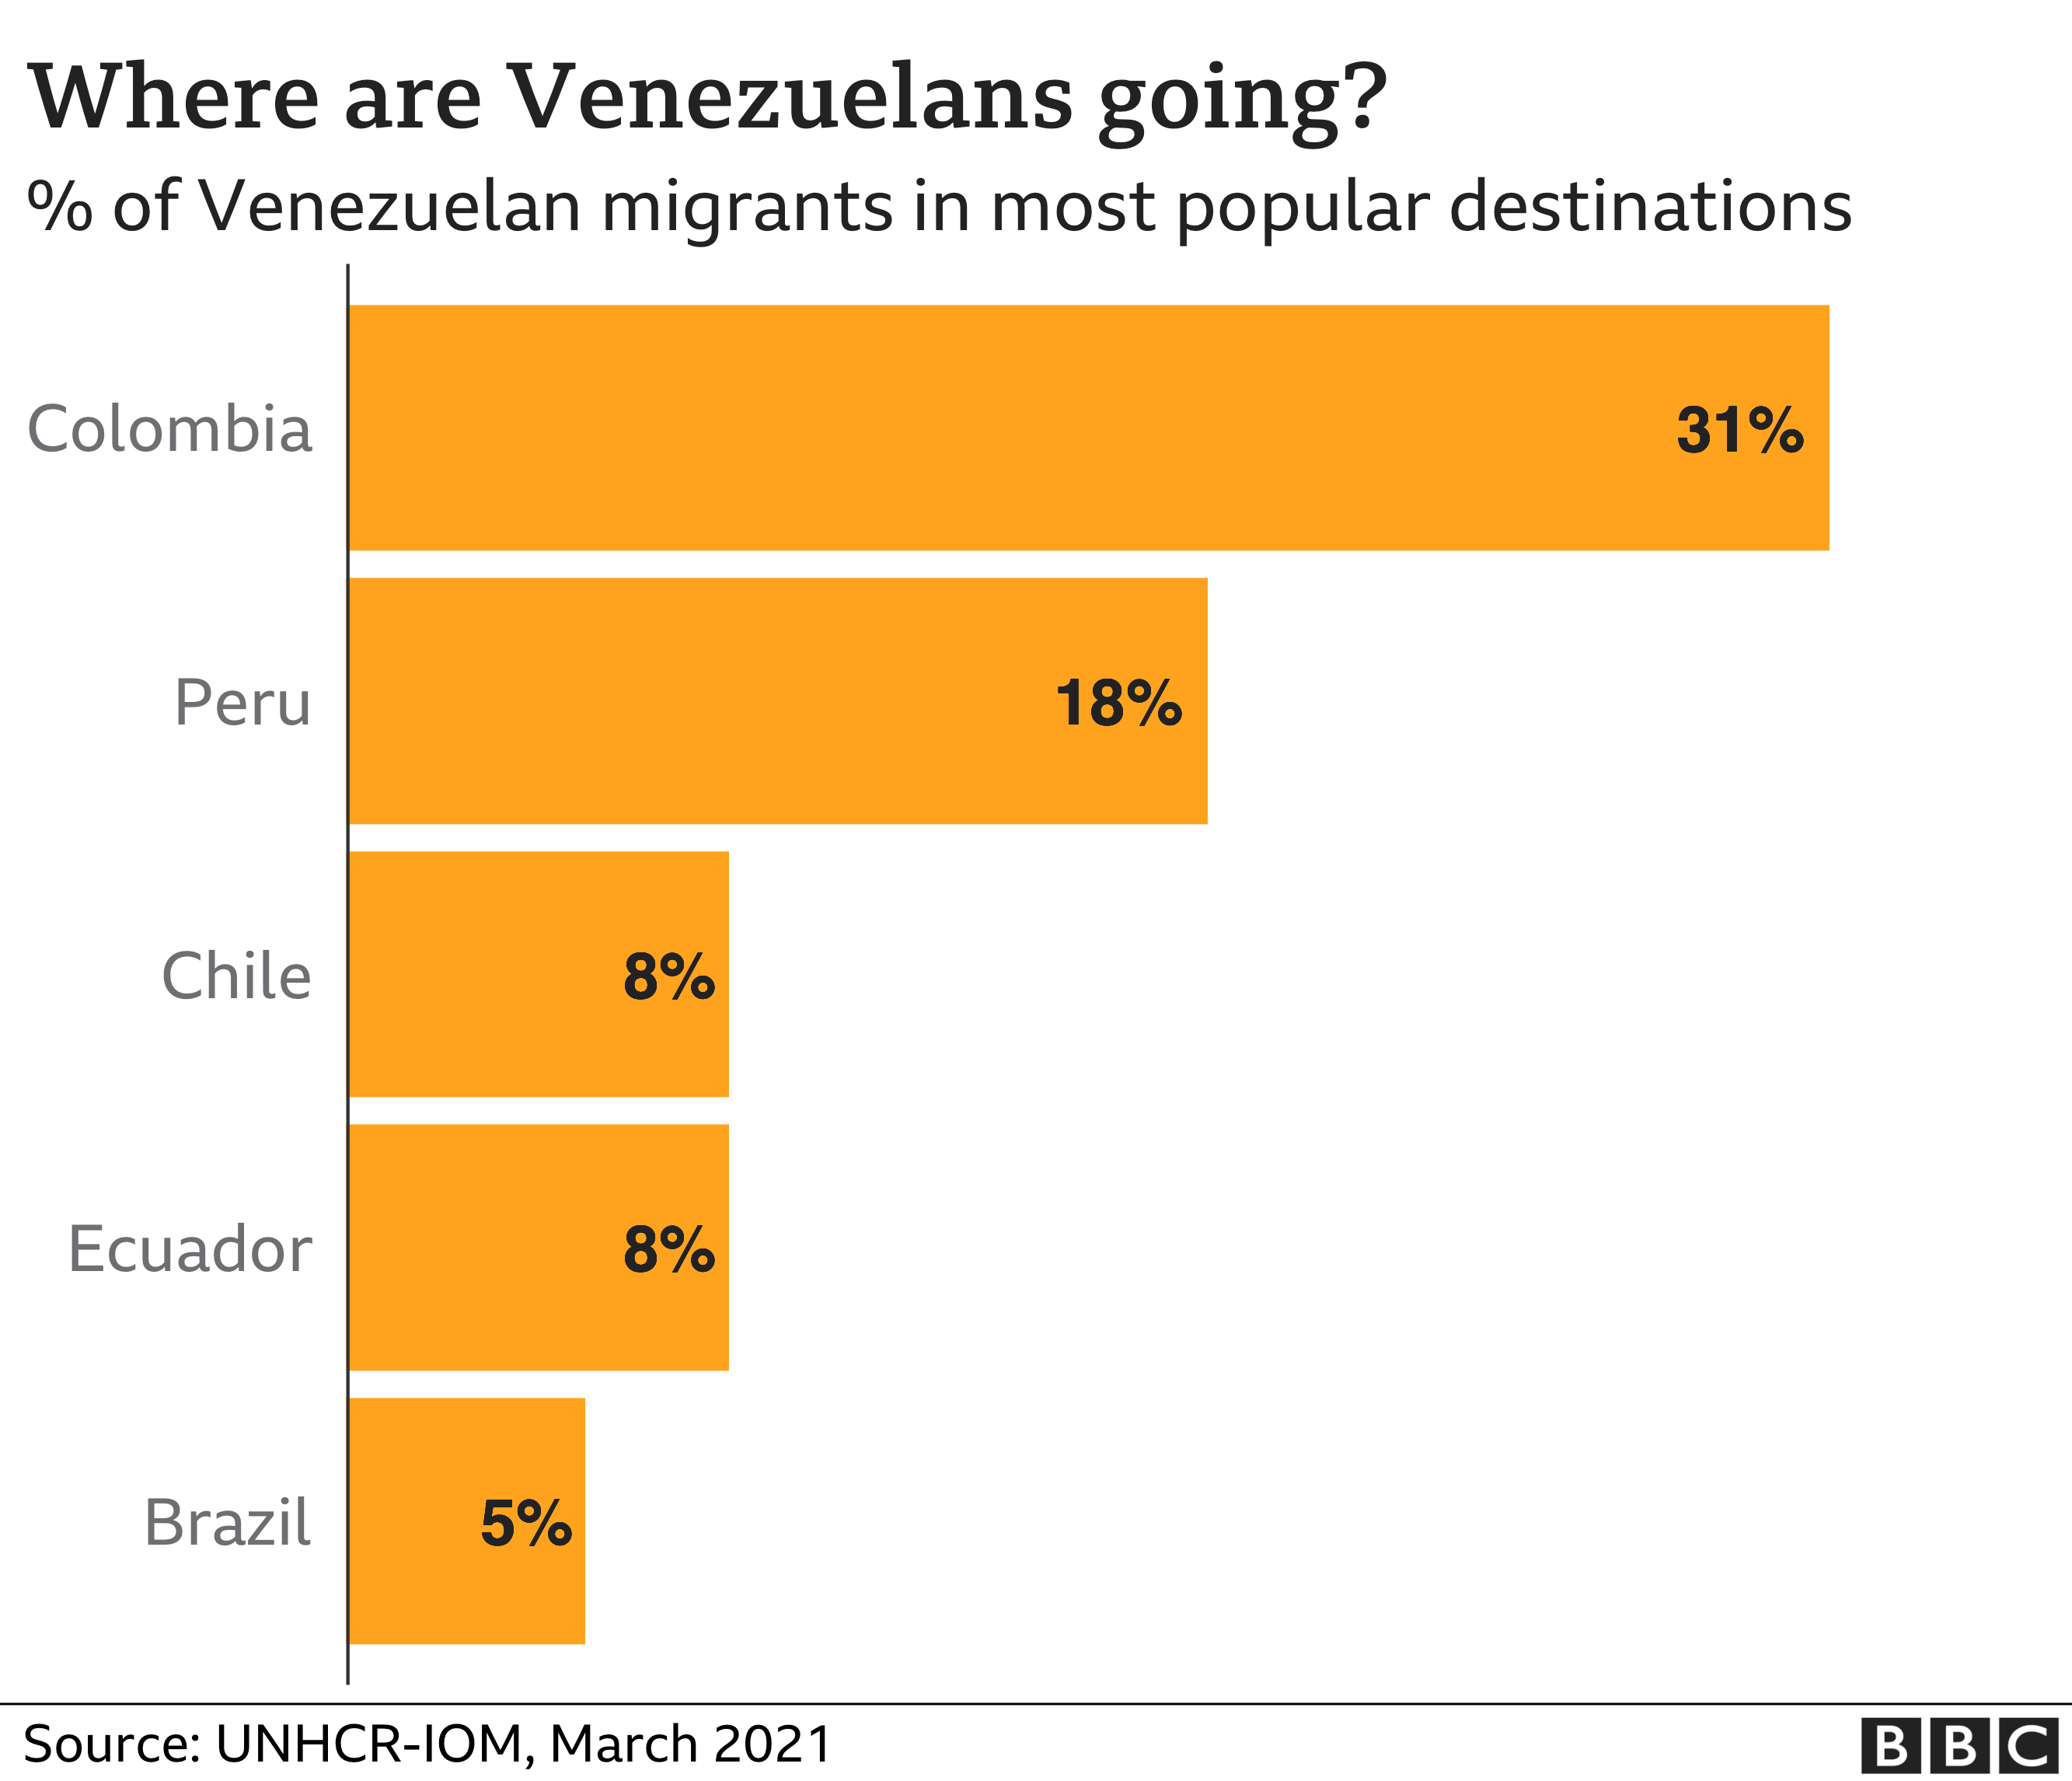 Chart showing where Venezuelans are emigrating to